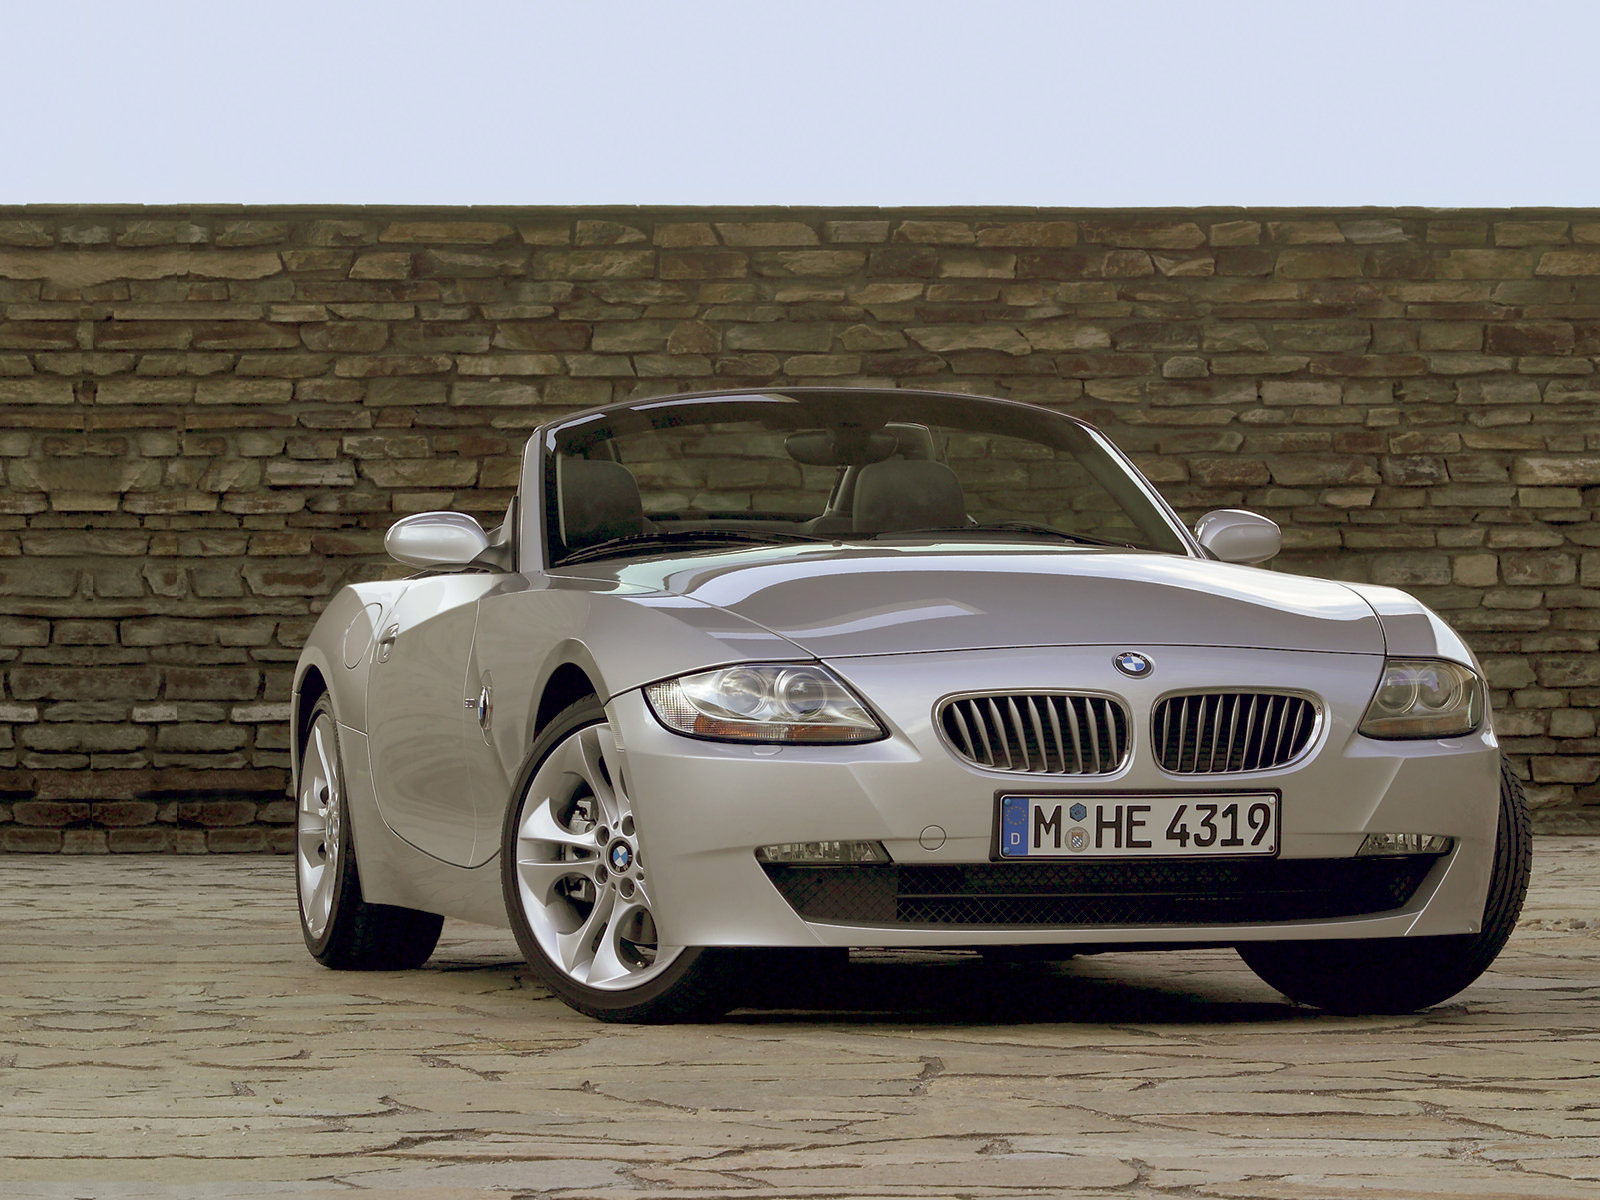 2006 Bmw Z4 Roadster Car Pictures Bmw Automotive